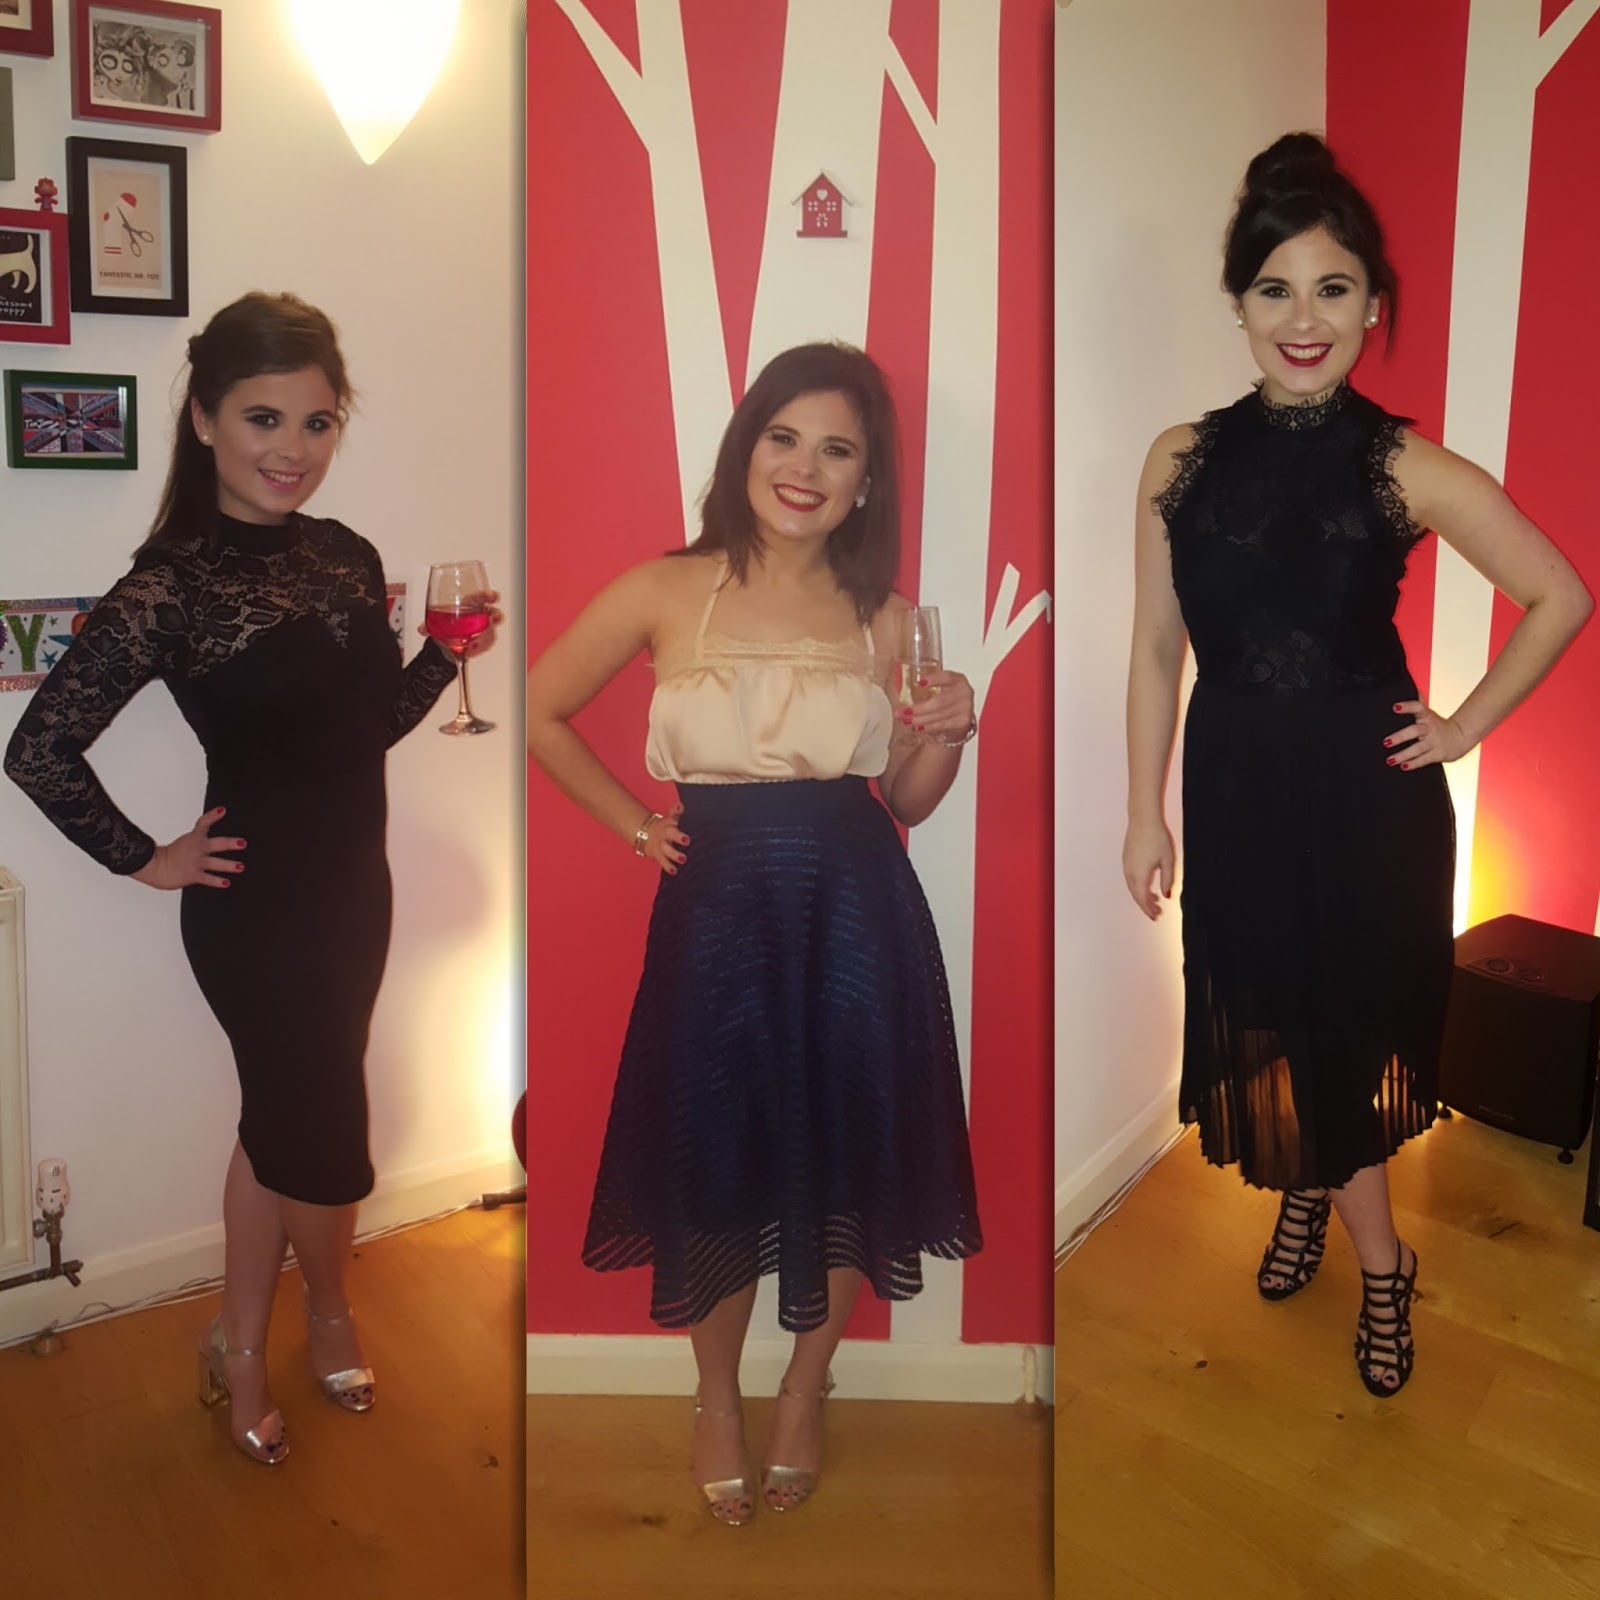 497af0edd4f I promised in my last fashion post that I would feature a look book. A look  book dedicated to the outfits I wore over my 21st birthday celebrations.